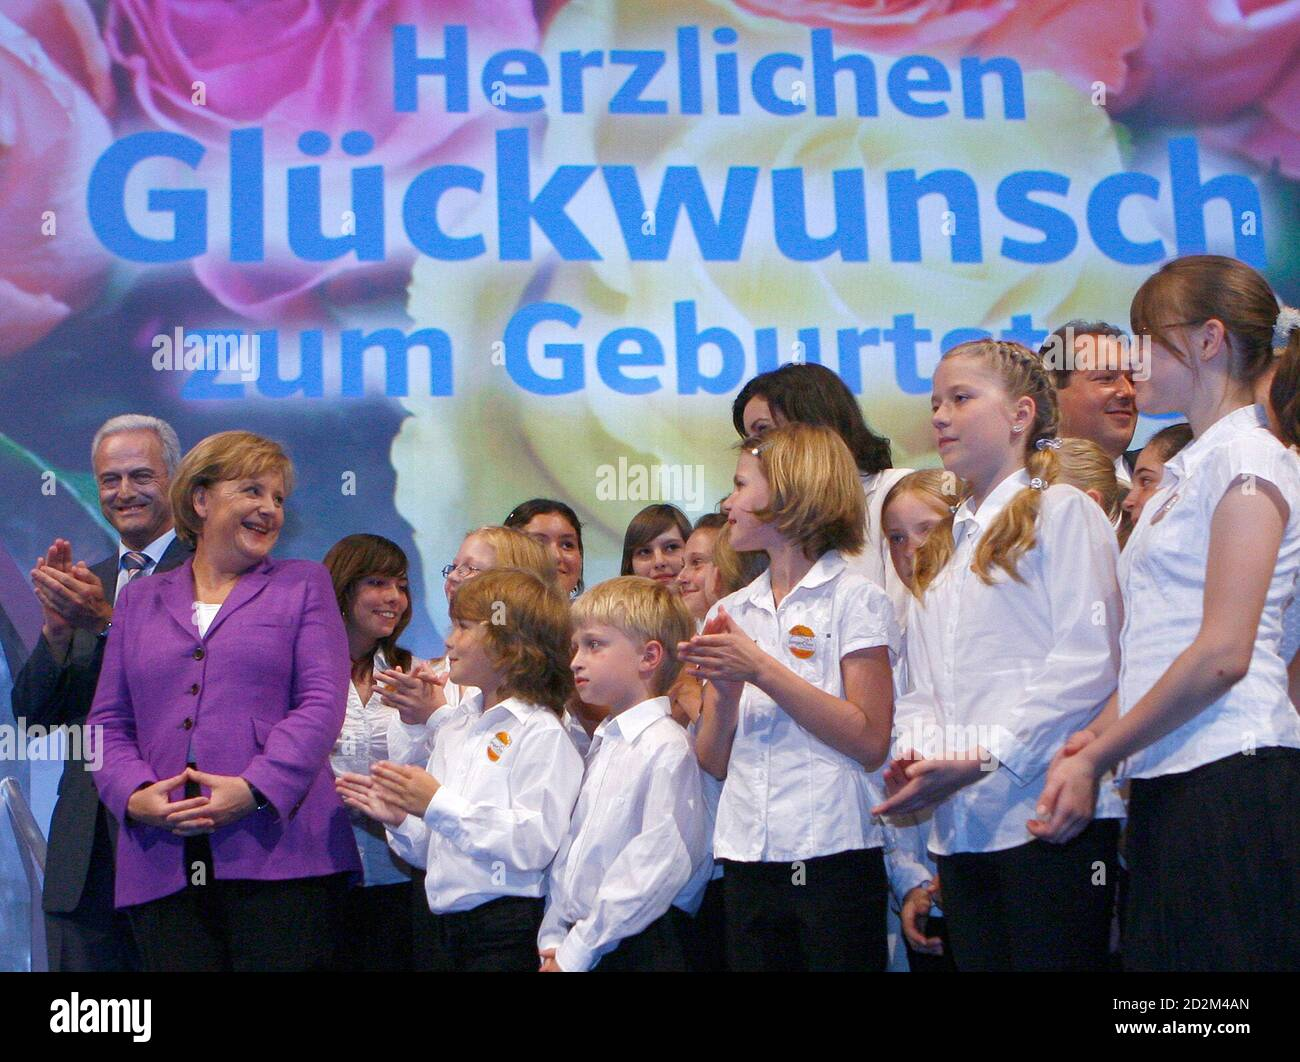 German Chancellor Angela Merkel (2ndL) smiles after she was sung a birthday song by a childrens choir for her 55th birthday, at the start of a two-day party meeting of Bavaria's Christian Social Union (CSU) in Nuremberg July 17, 2009.   REUTERS/Alexandra Beier (GERMANY POLITICS) Stock Photo